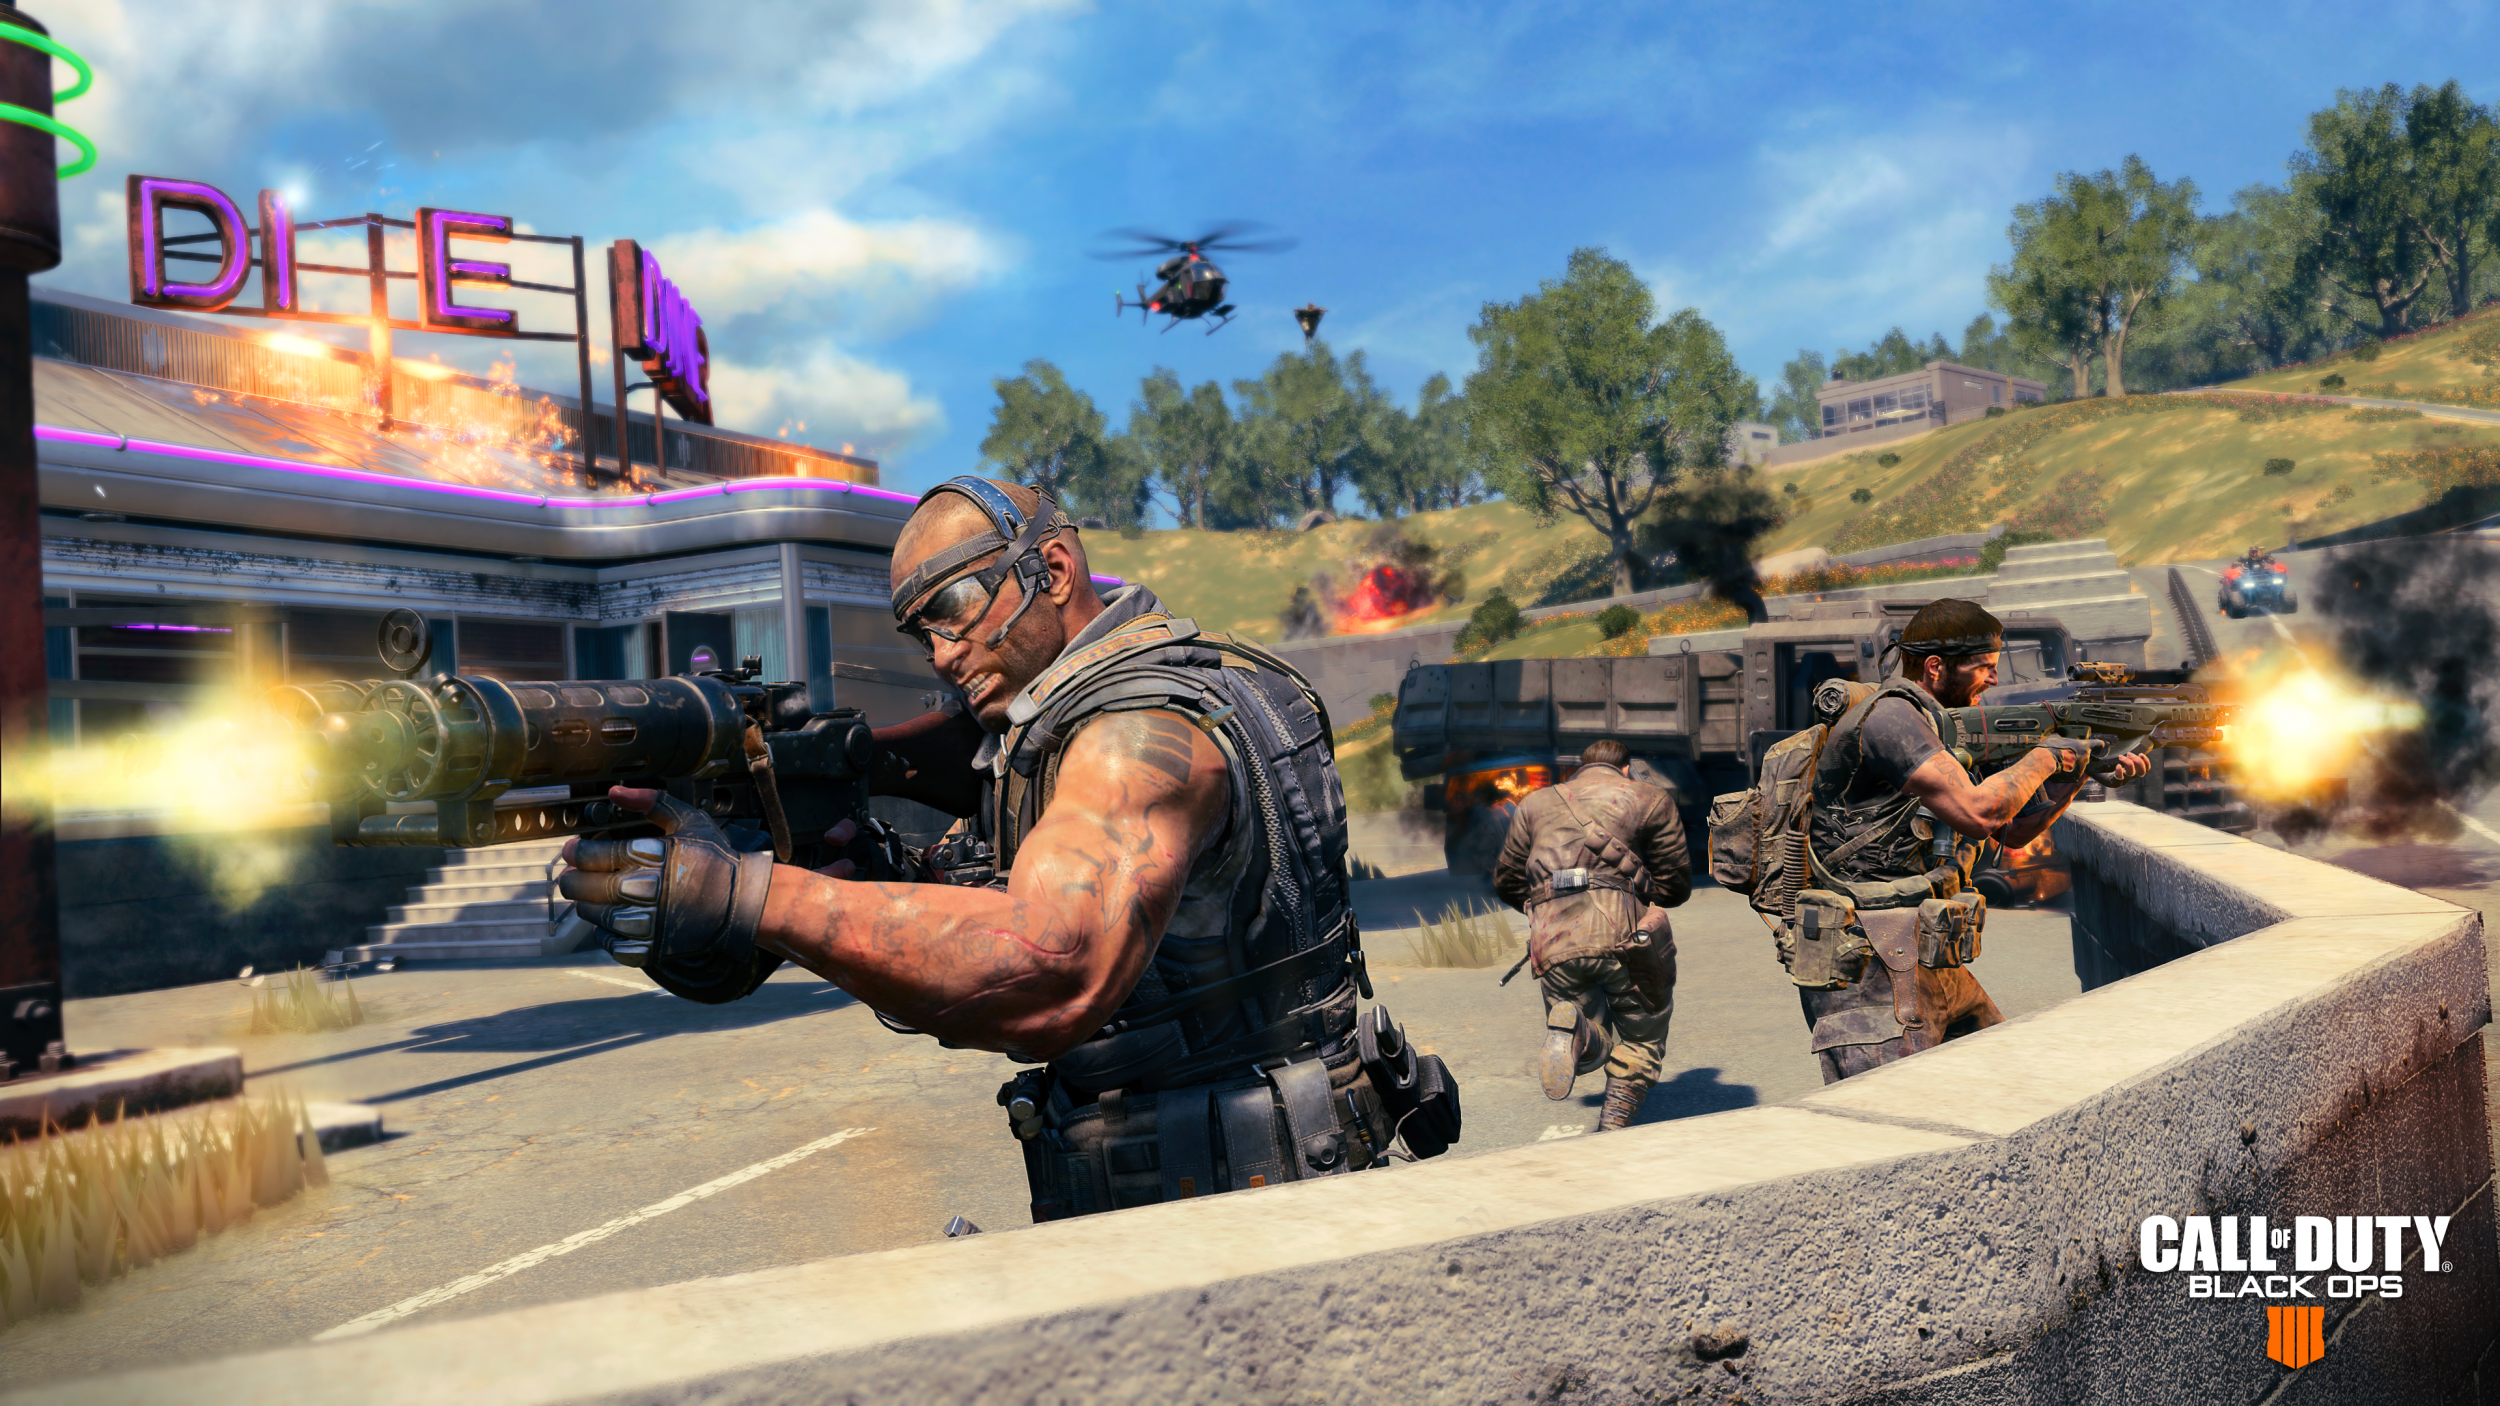 Call of Duty: Black Ops 4' Blackout Map Update Due Dec. 11 ... Call Of Duty Black Ops Map on call of duty map layouts, destiny control points maps, call of duty 4: modern warfare, call of duty 2, call of duty bo2, call of duty advanced warfare maps, red dead redemption, call of duty modern warfare 2, call of duty: world at war, call of duty gears of war maps, black ops wii maps, grand theft auto, call of duty 3, call of duty zombies, call of duty 3 maps, call of duty game maps, call duty black ops 3, medal of honor, best call of duty maps, call of duty desert map, black ops zombie maps, bo2 zombies dlc maps, halo: reach, call of duty series list, gears of war 3 maps, gears of war, call of duty: black ops ii, batman: arkham city, black ops ii maps, call of duty: modern warfare 3, call of duty: modern warfare 2, call of duty carrier map, call of duty 2 maps,